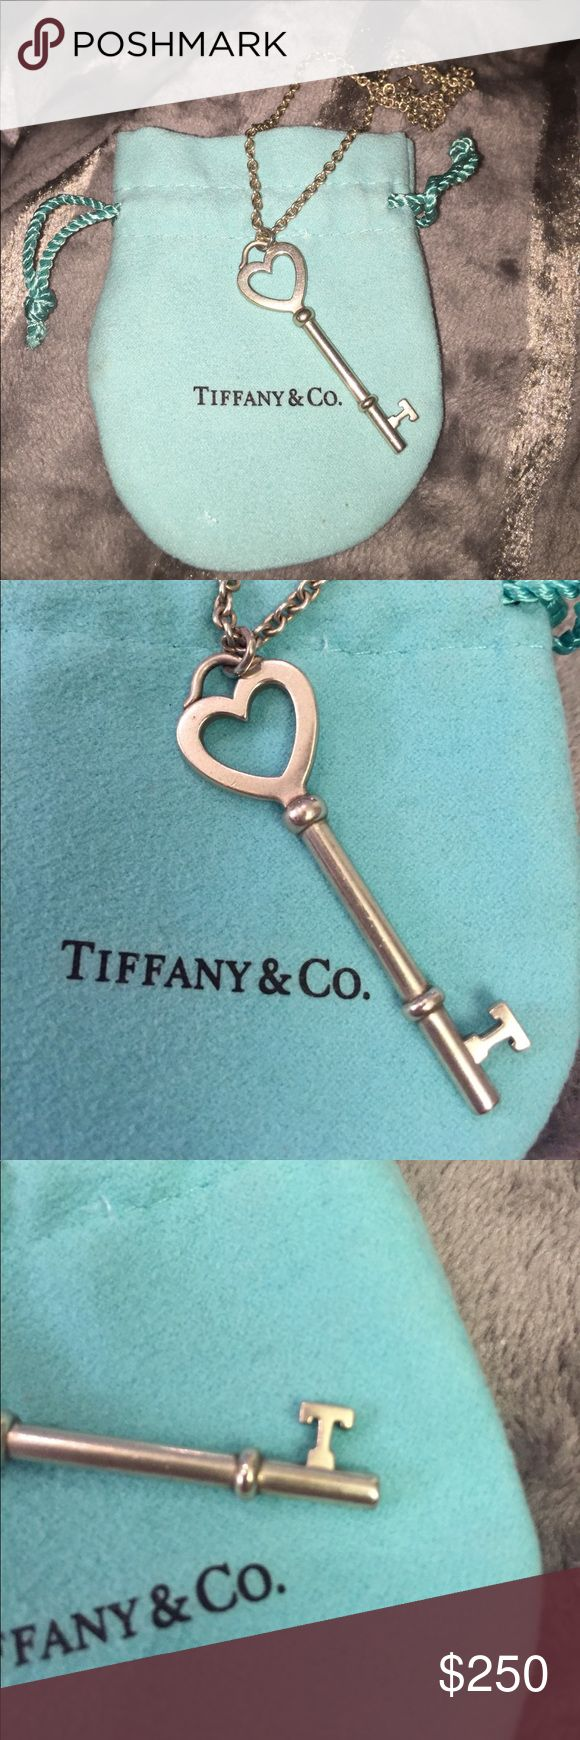 "Tiffany & Co. Sterling silver heart key necklace Tiffany & Co. Sterling silver heart key pendant necklace. Tiffany keys. Pendant measure 2"" inches - some wear/marks -no big flaws - heart shaped key with letter ""T"" detail on key - stamped with Tiffany logo and stamped 925 - Tiffany chain measures 18""- comes with Tiffany blue pouch- some discoloration on the chain. Please see pictures Tiffany & Co. Jewelry Necklaces"